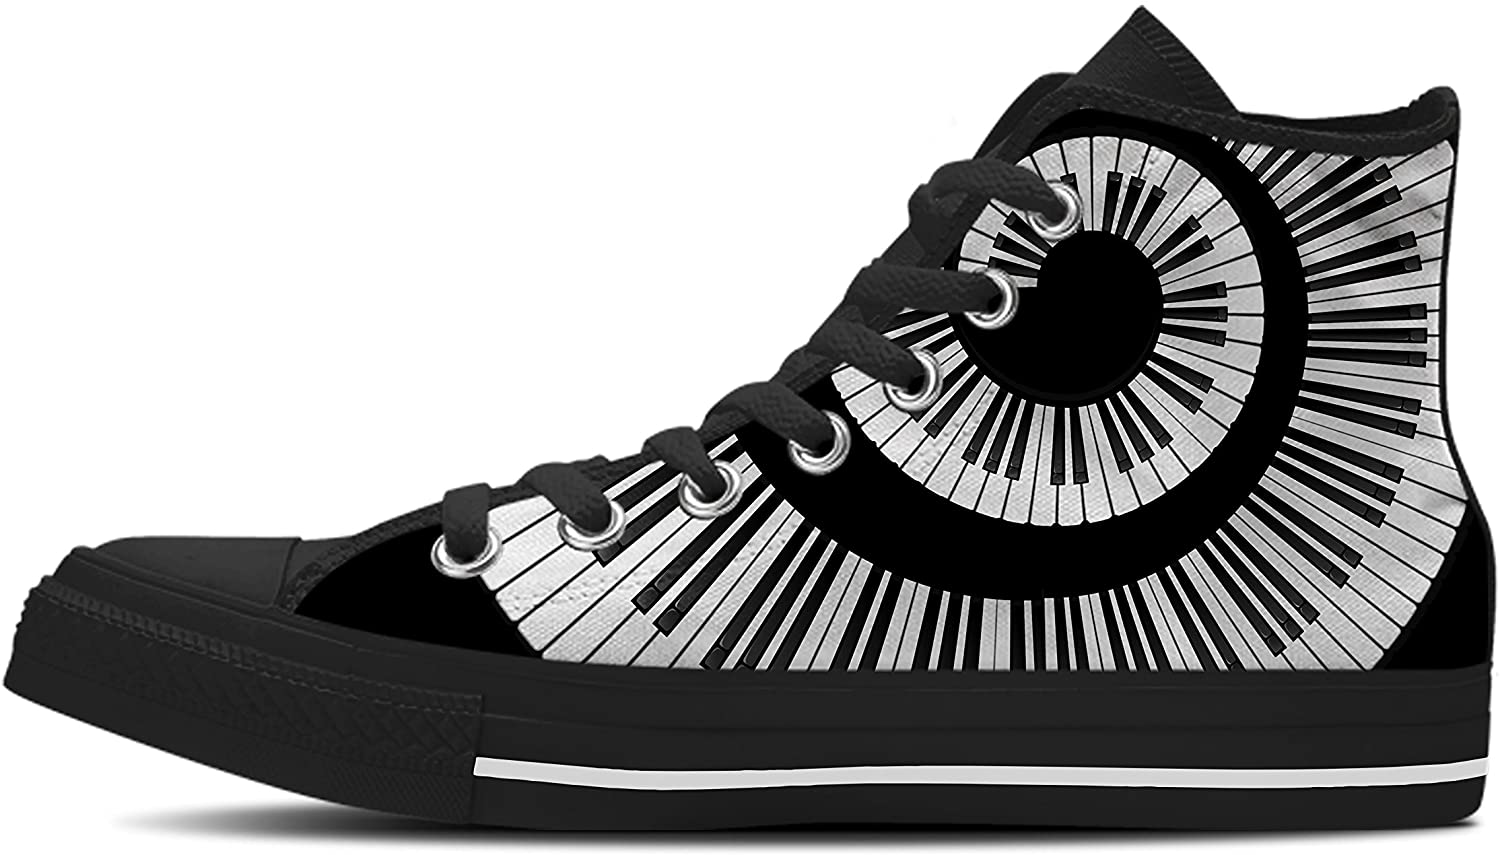 Gnarly Tees Women's Piano Spiral Shoes High Top